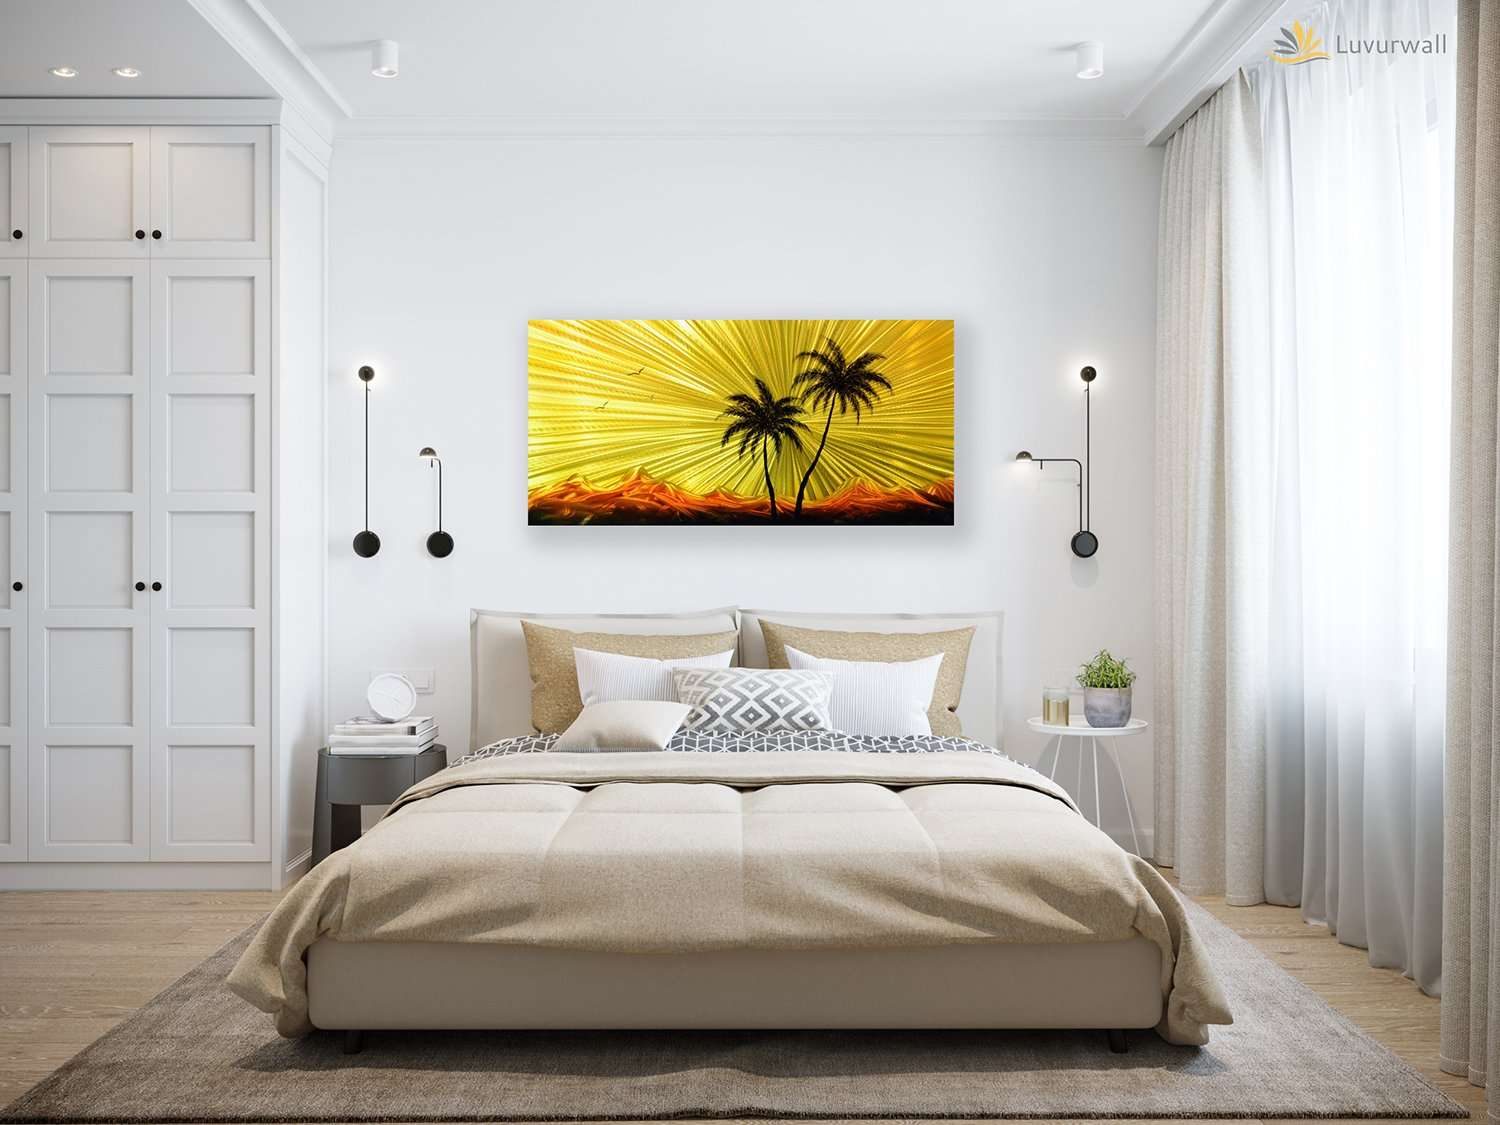 Luvurwall Palm Trees Metal Wall Art, Metal Wall Art - Luvurwall